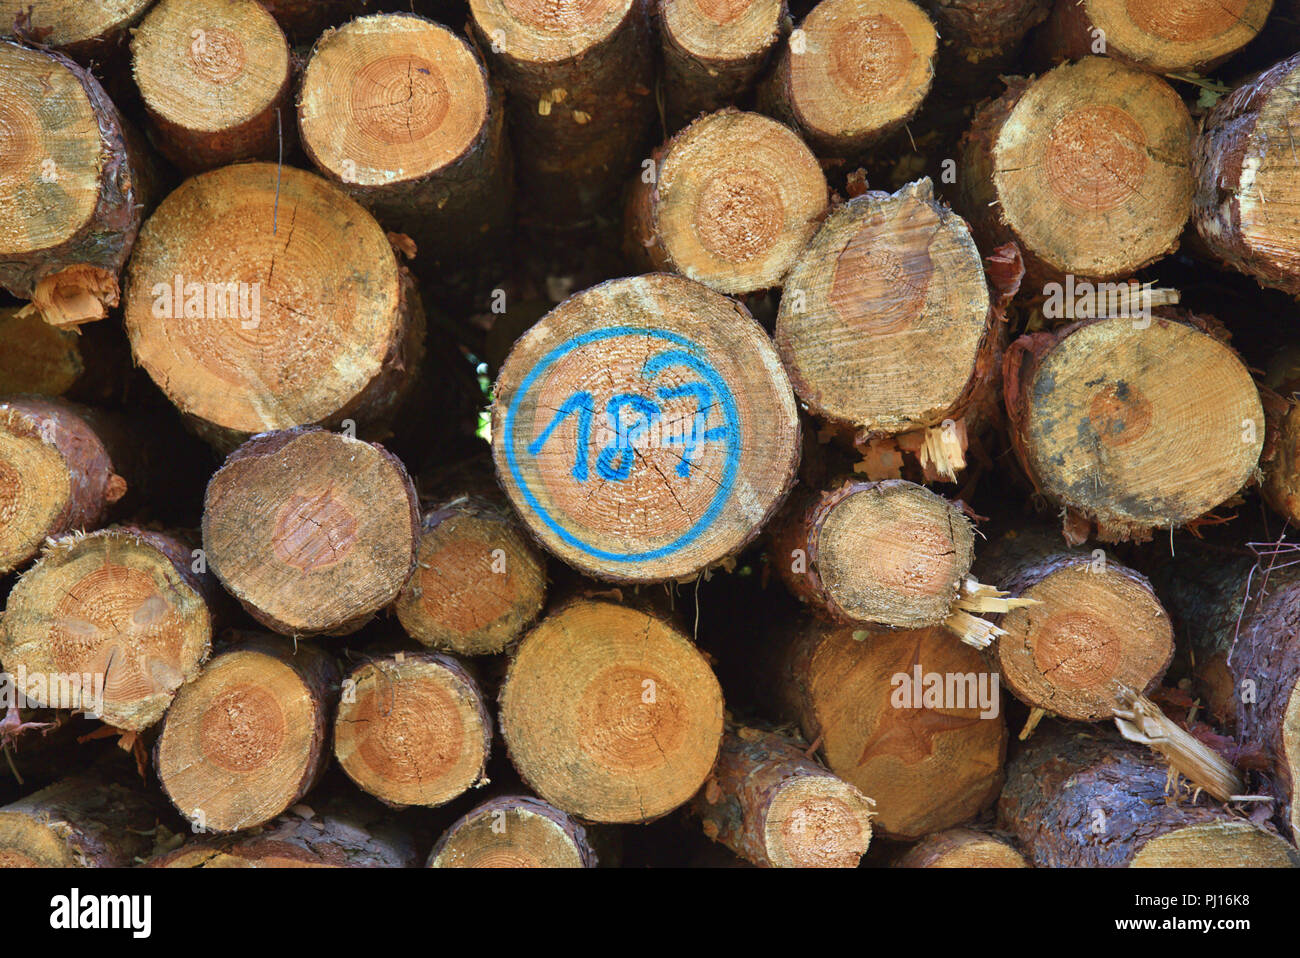 Cut surfaces of stacked tree trunks. Stock Photo